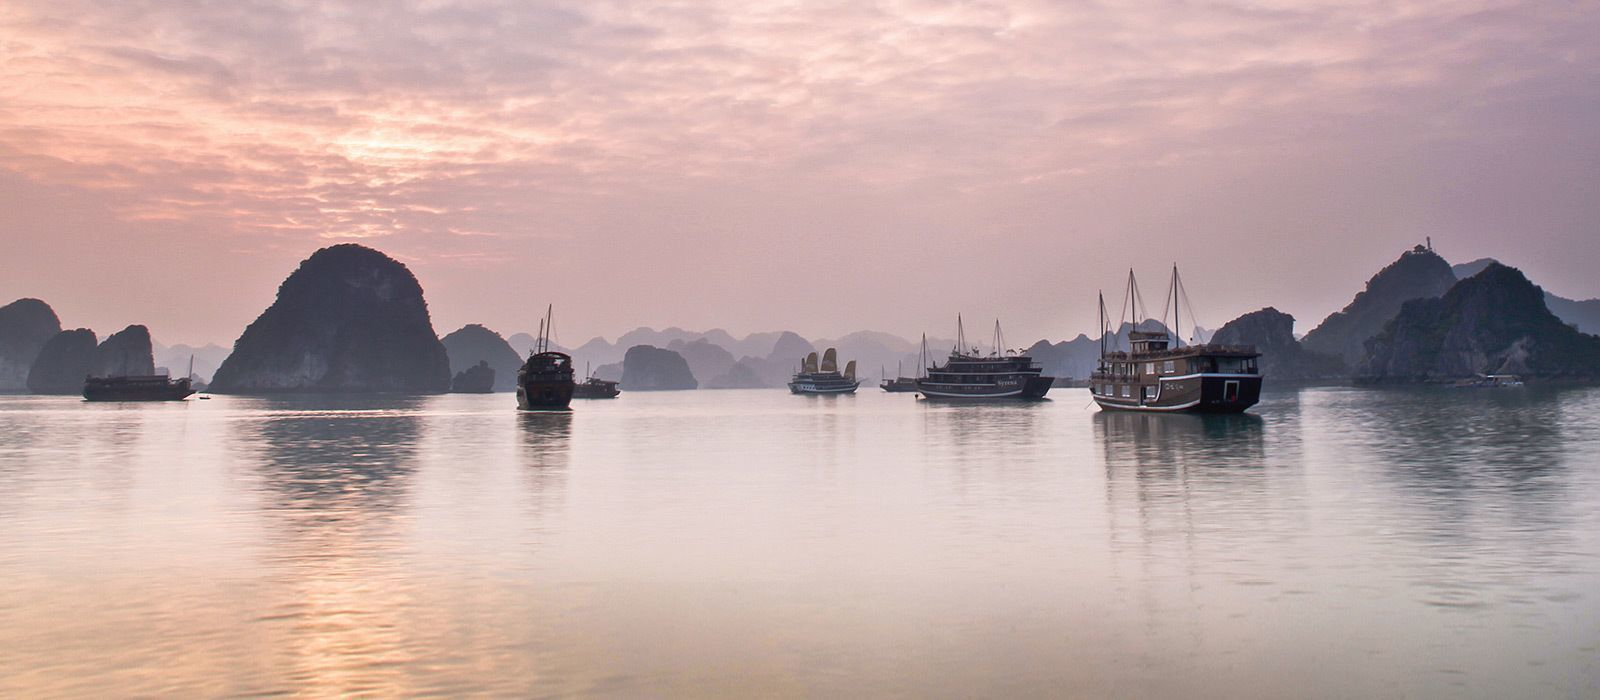 Vividly Yours, Vietnam Tour Trip 2